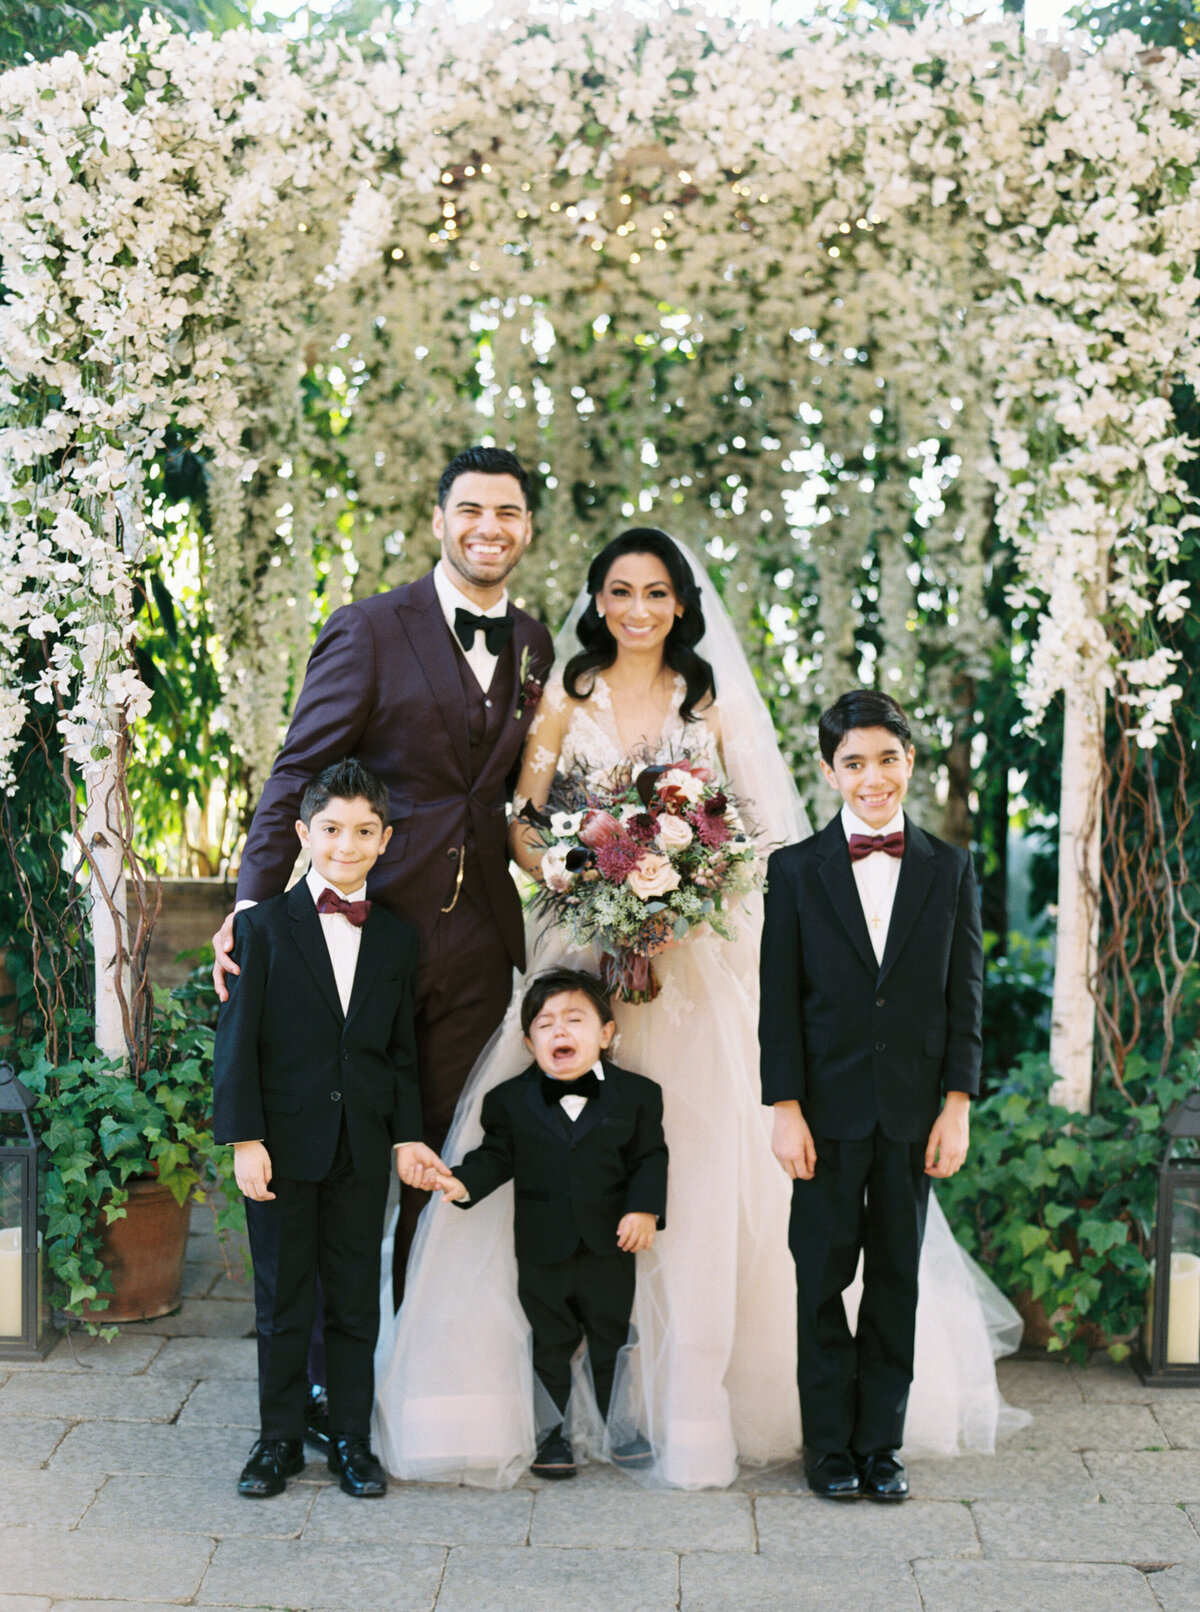 Kaylea Moreno_wedding gallery - Rami-Cassandra-Wedding-krmorenophoto-303